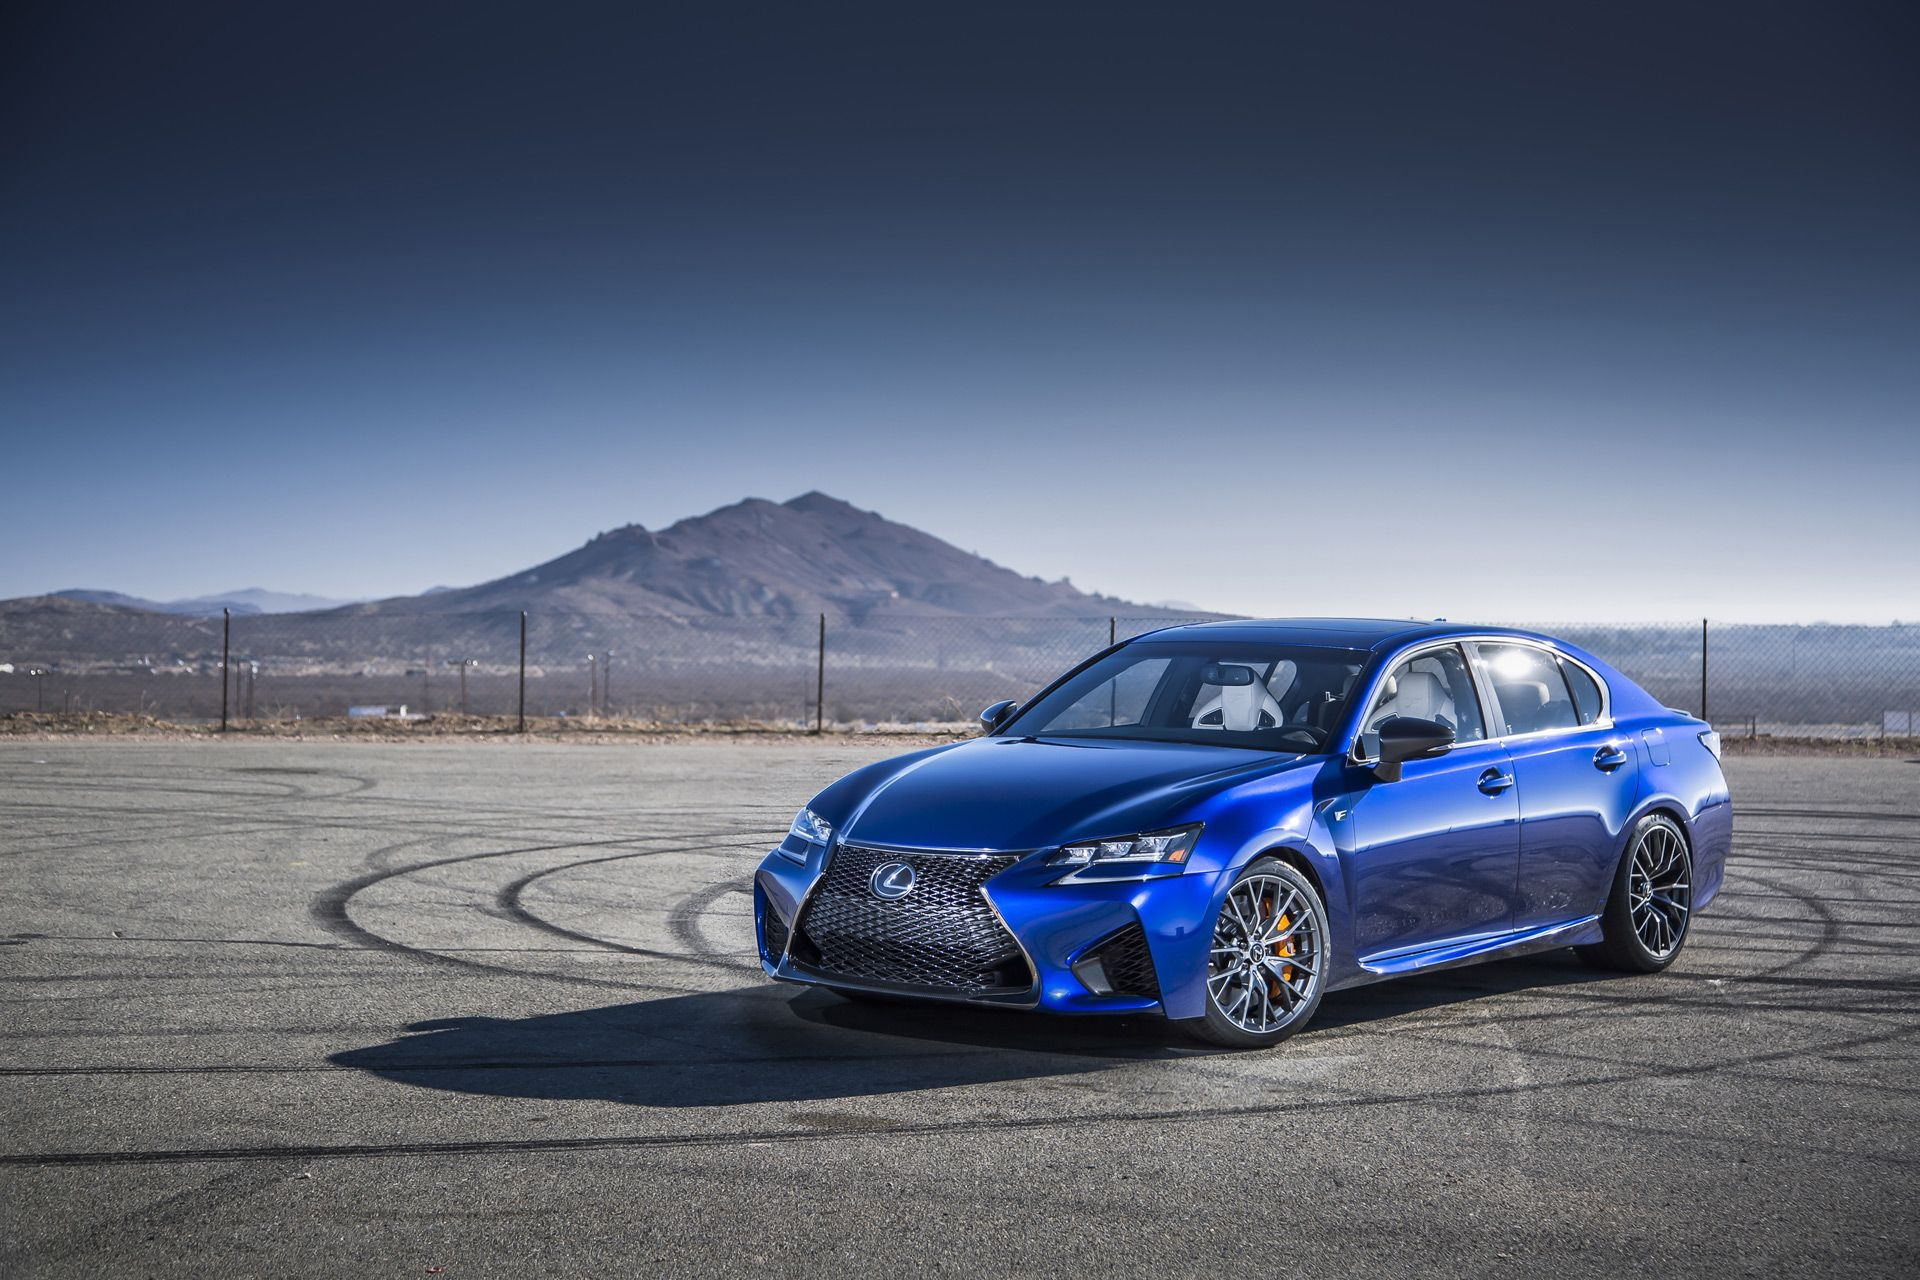 2016 lexus gs f sedan is ready to take on the bmw m5 and mb e55